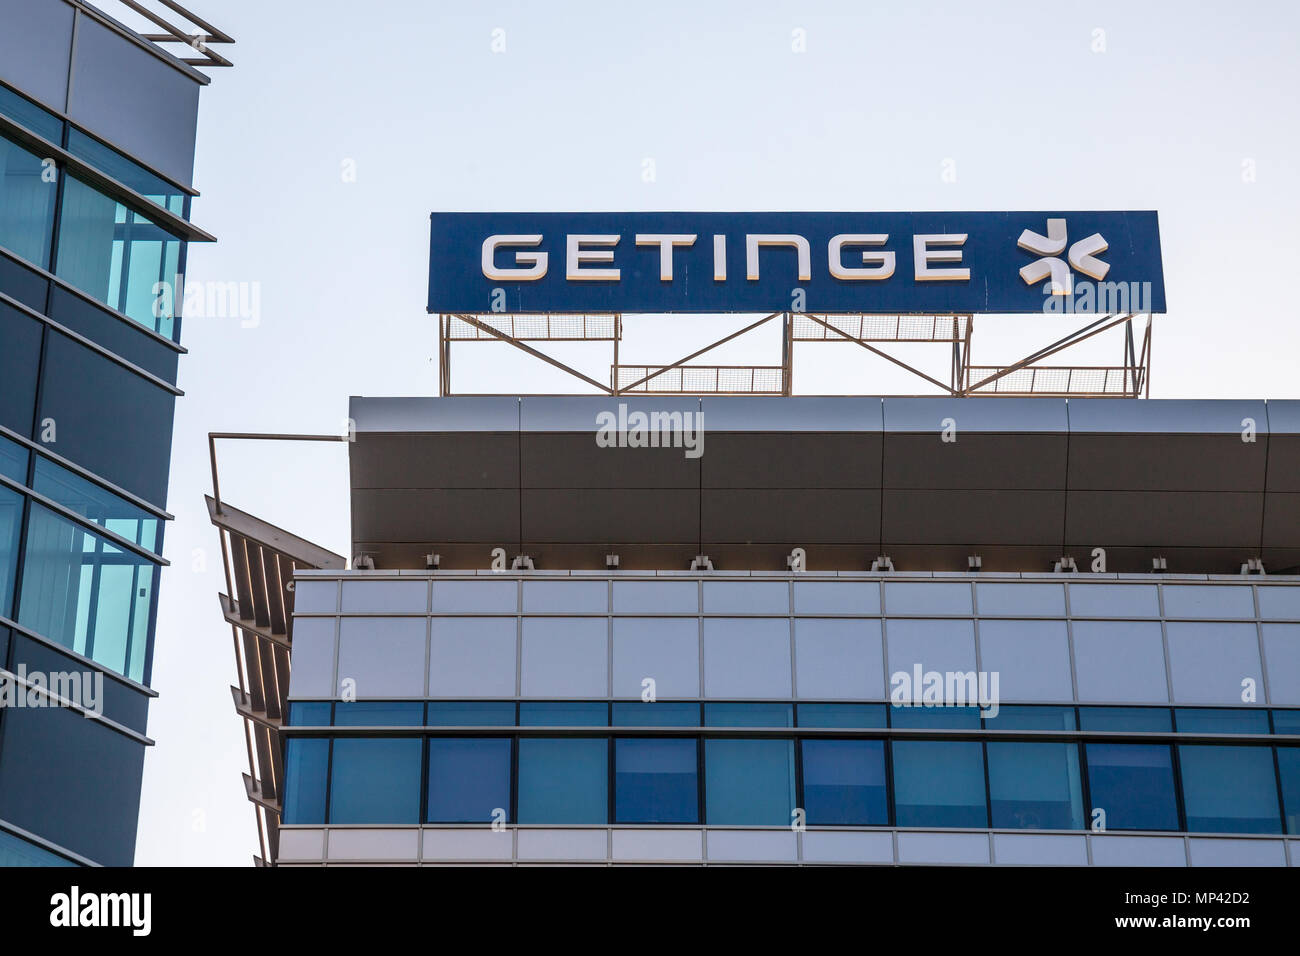 BELGRADE, SERBIA - APRIL 29, 2018: Getinge logo on their main office in Serbia. Getinge AB is a Swedish medical technology company, specialized in  eq - Stock Image